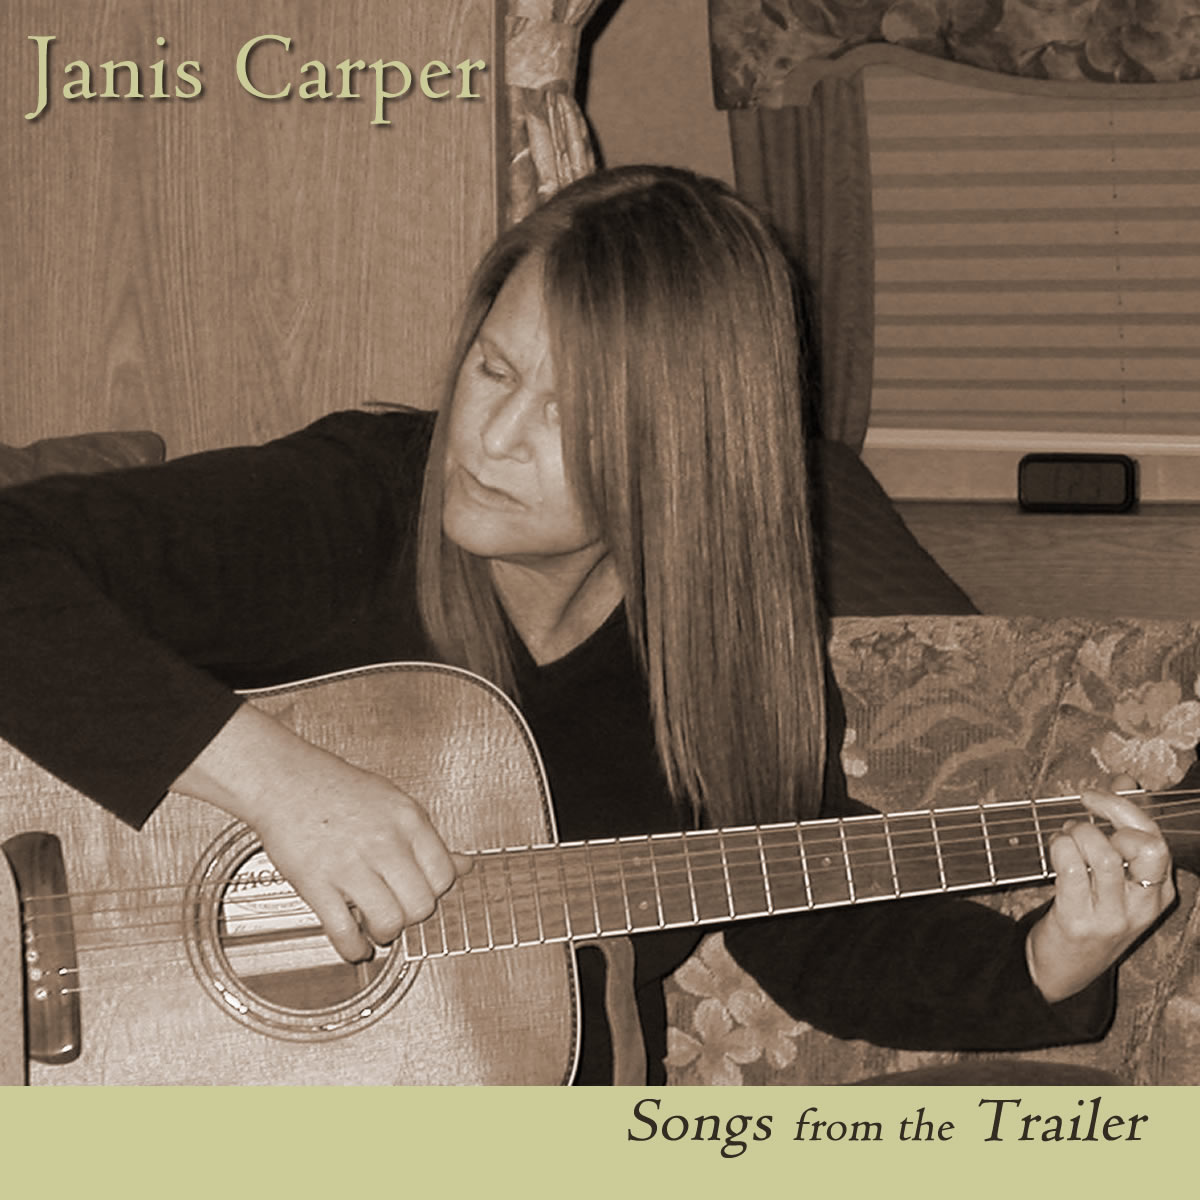 Janis Carper - Songs from the Trailer